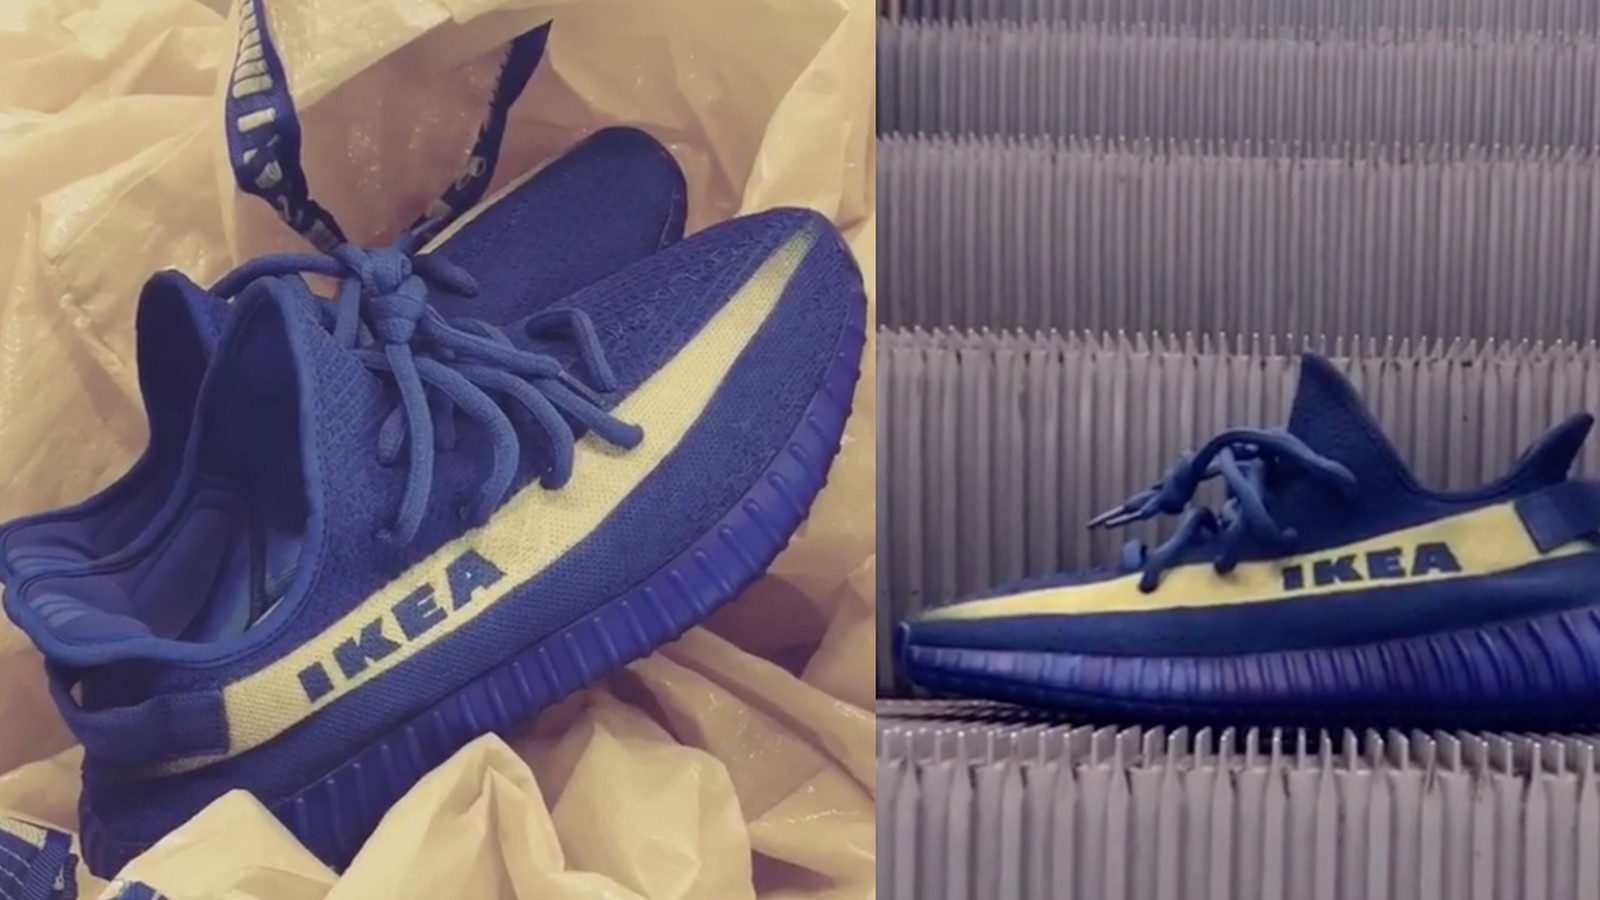 Ikea Utah Ikea-inspired Yeezys Are A Real Thing And I Want A Pair